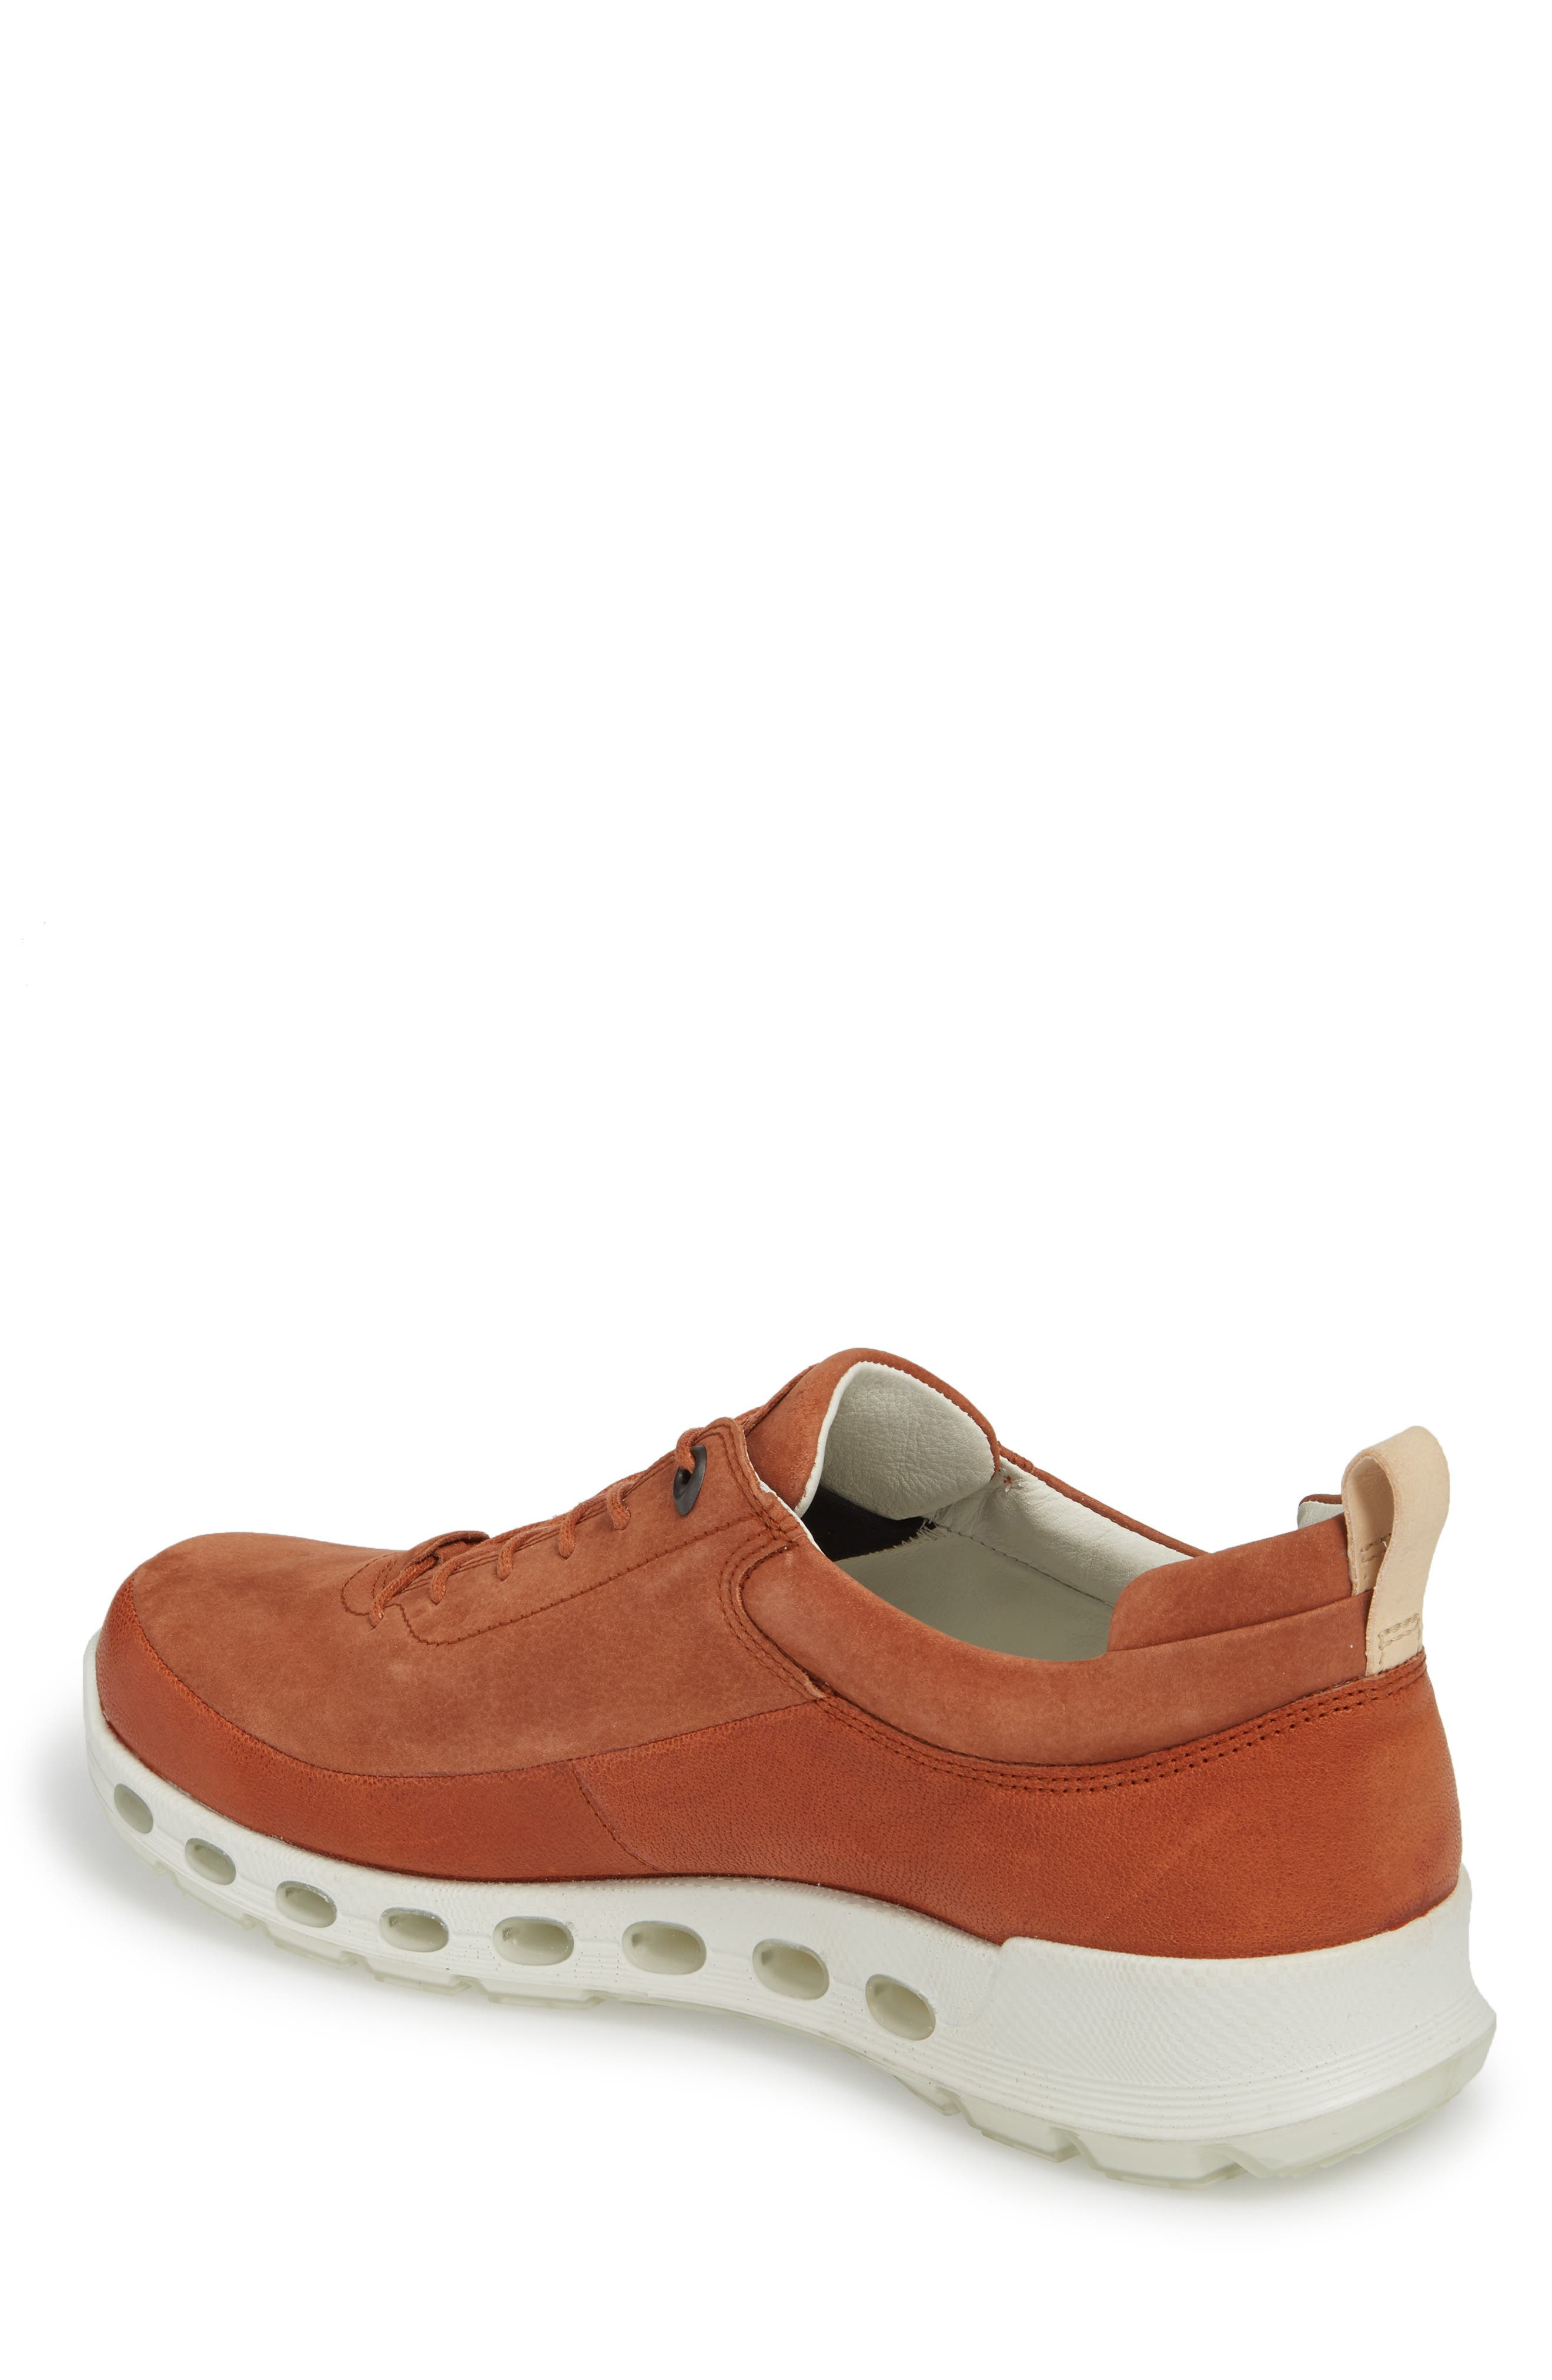 Cool 2.0 Gore-Tex<sup>®</sup> Sneaker,                             Alternate thumbnail 2, color,                             Brandy Leather